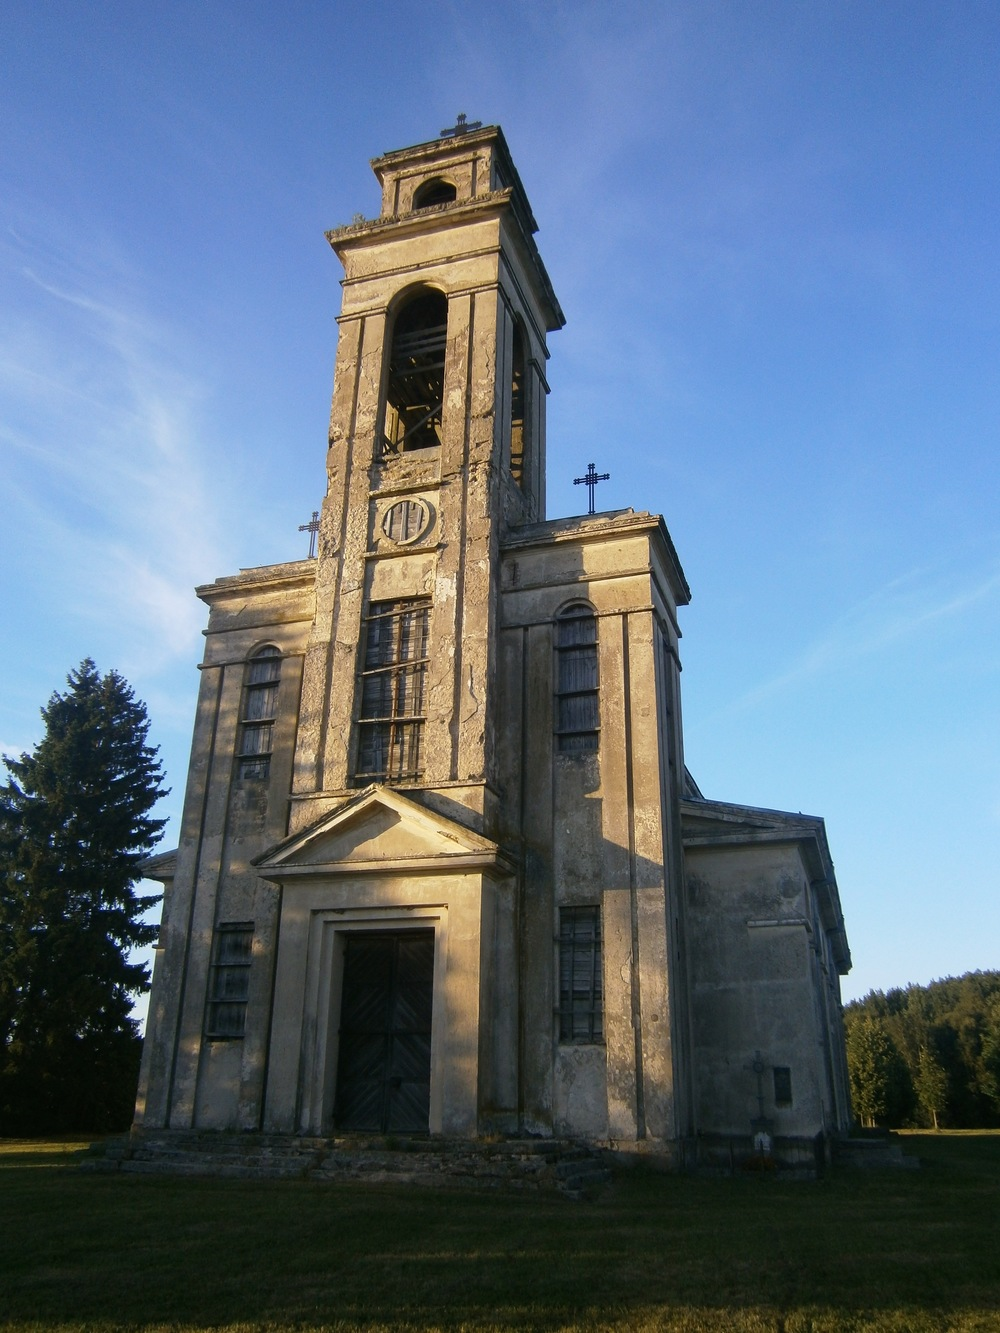 The Old Church at Palendriai is now abandoned, the new Benedictine Monastery nearby was built in 1993.